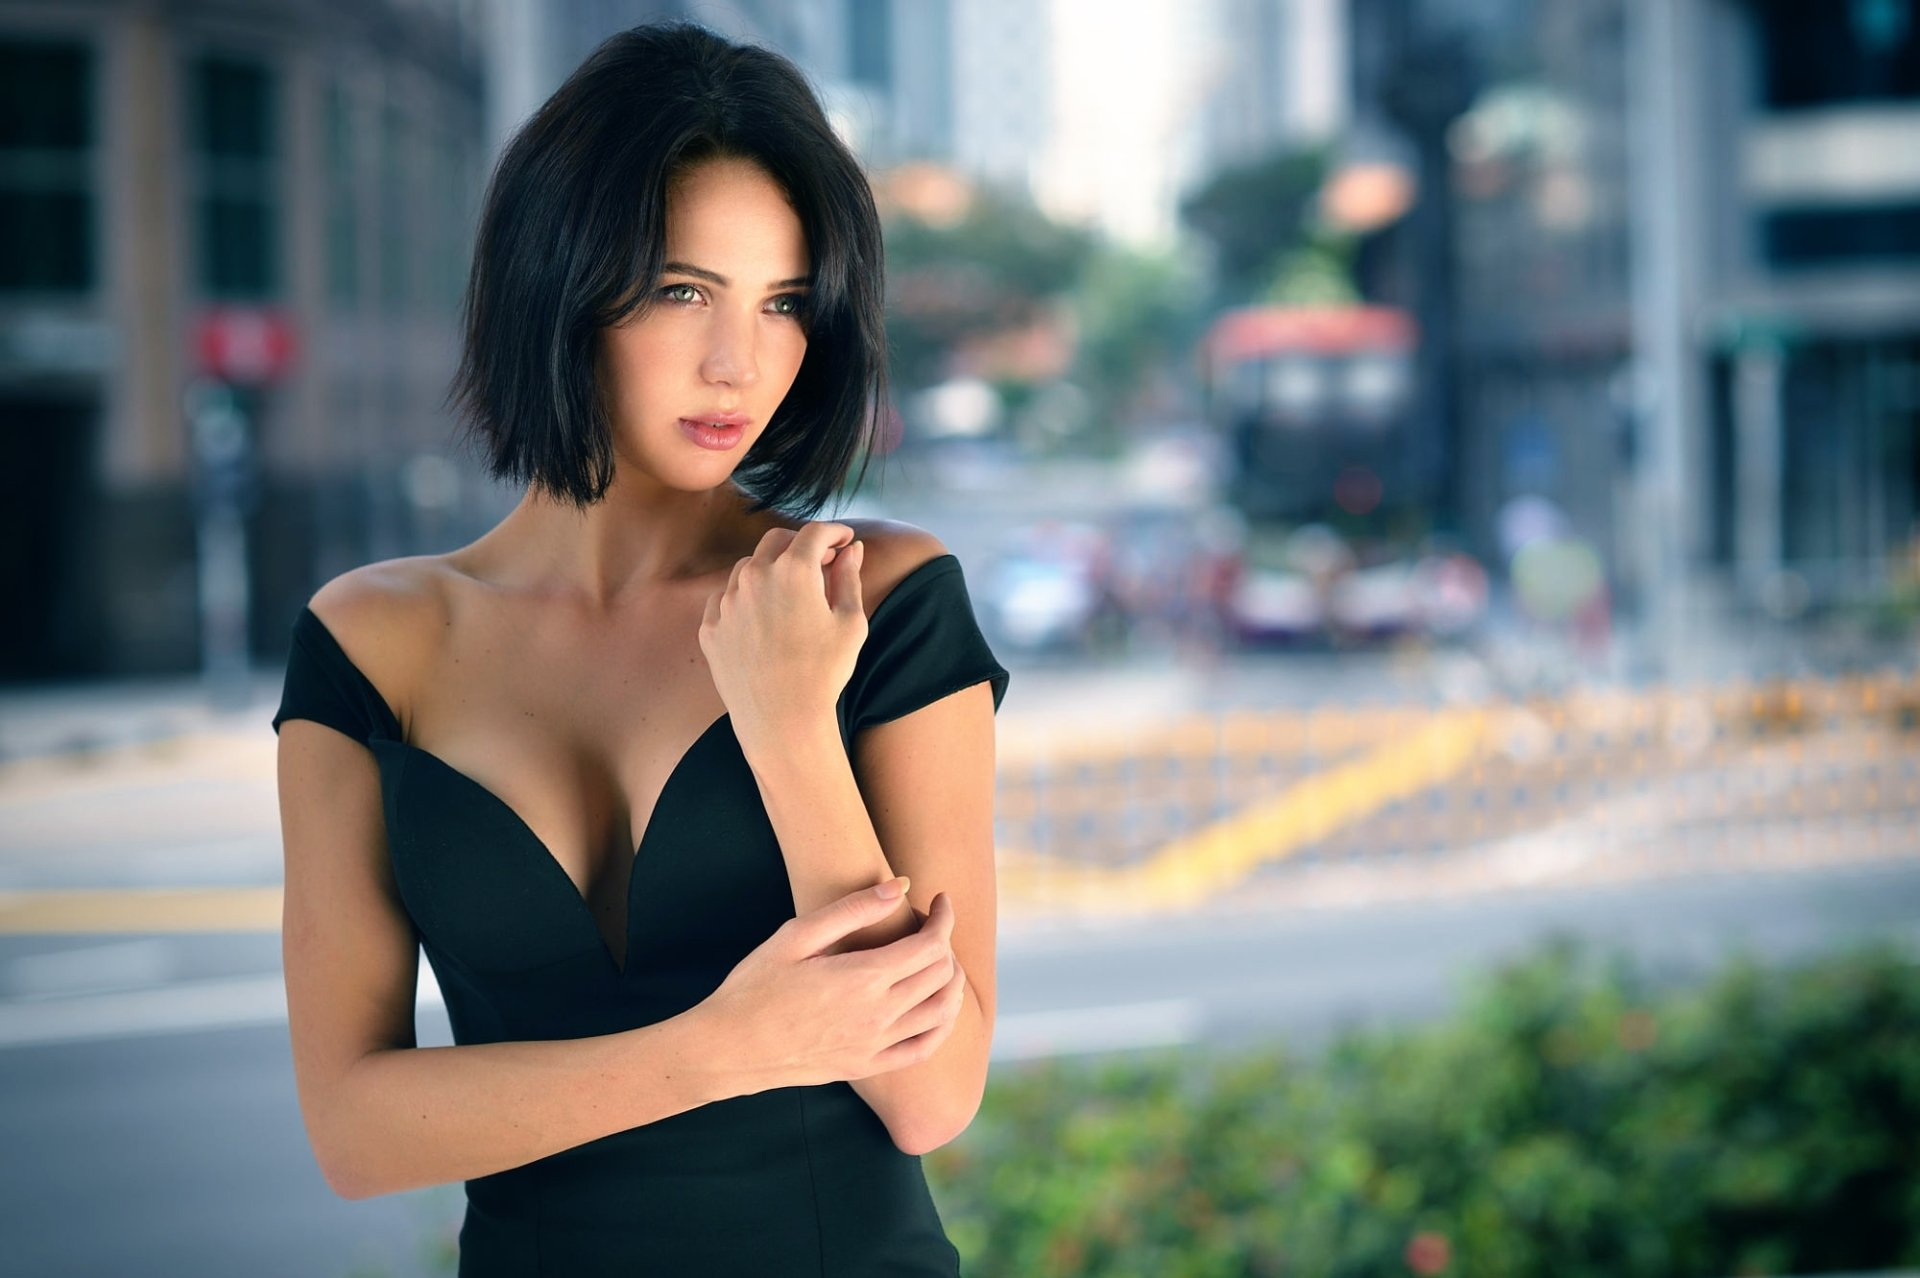 Women - Model  Girl Black Dress Green Eyes Brunette Blur Woman Wallpaper